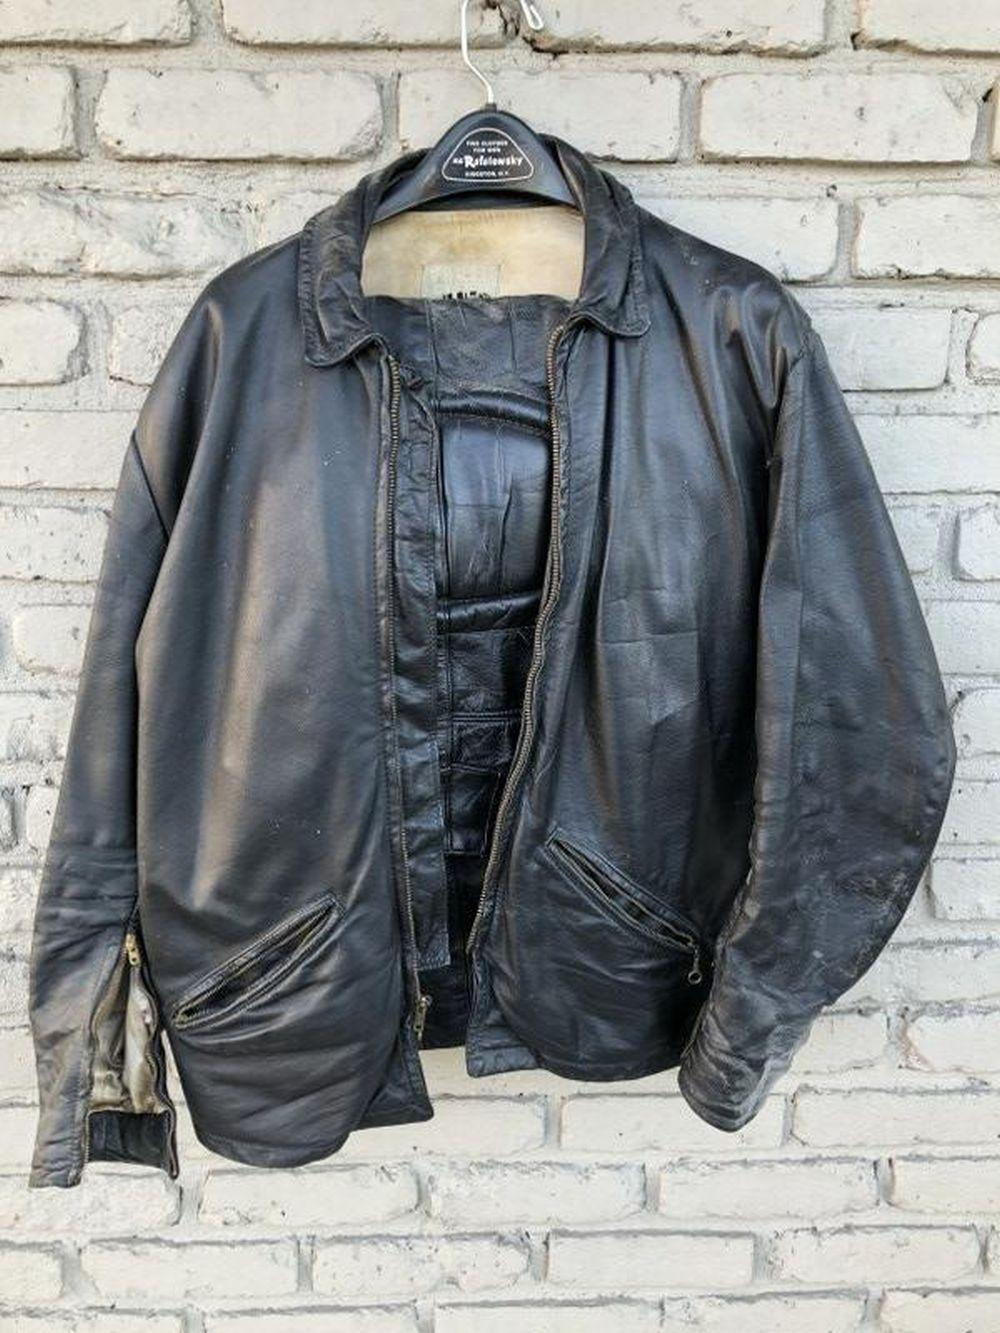 VINTAGE BLACK LEATHER MOTORCYCLE JACKET AND PANTS